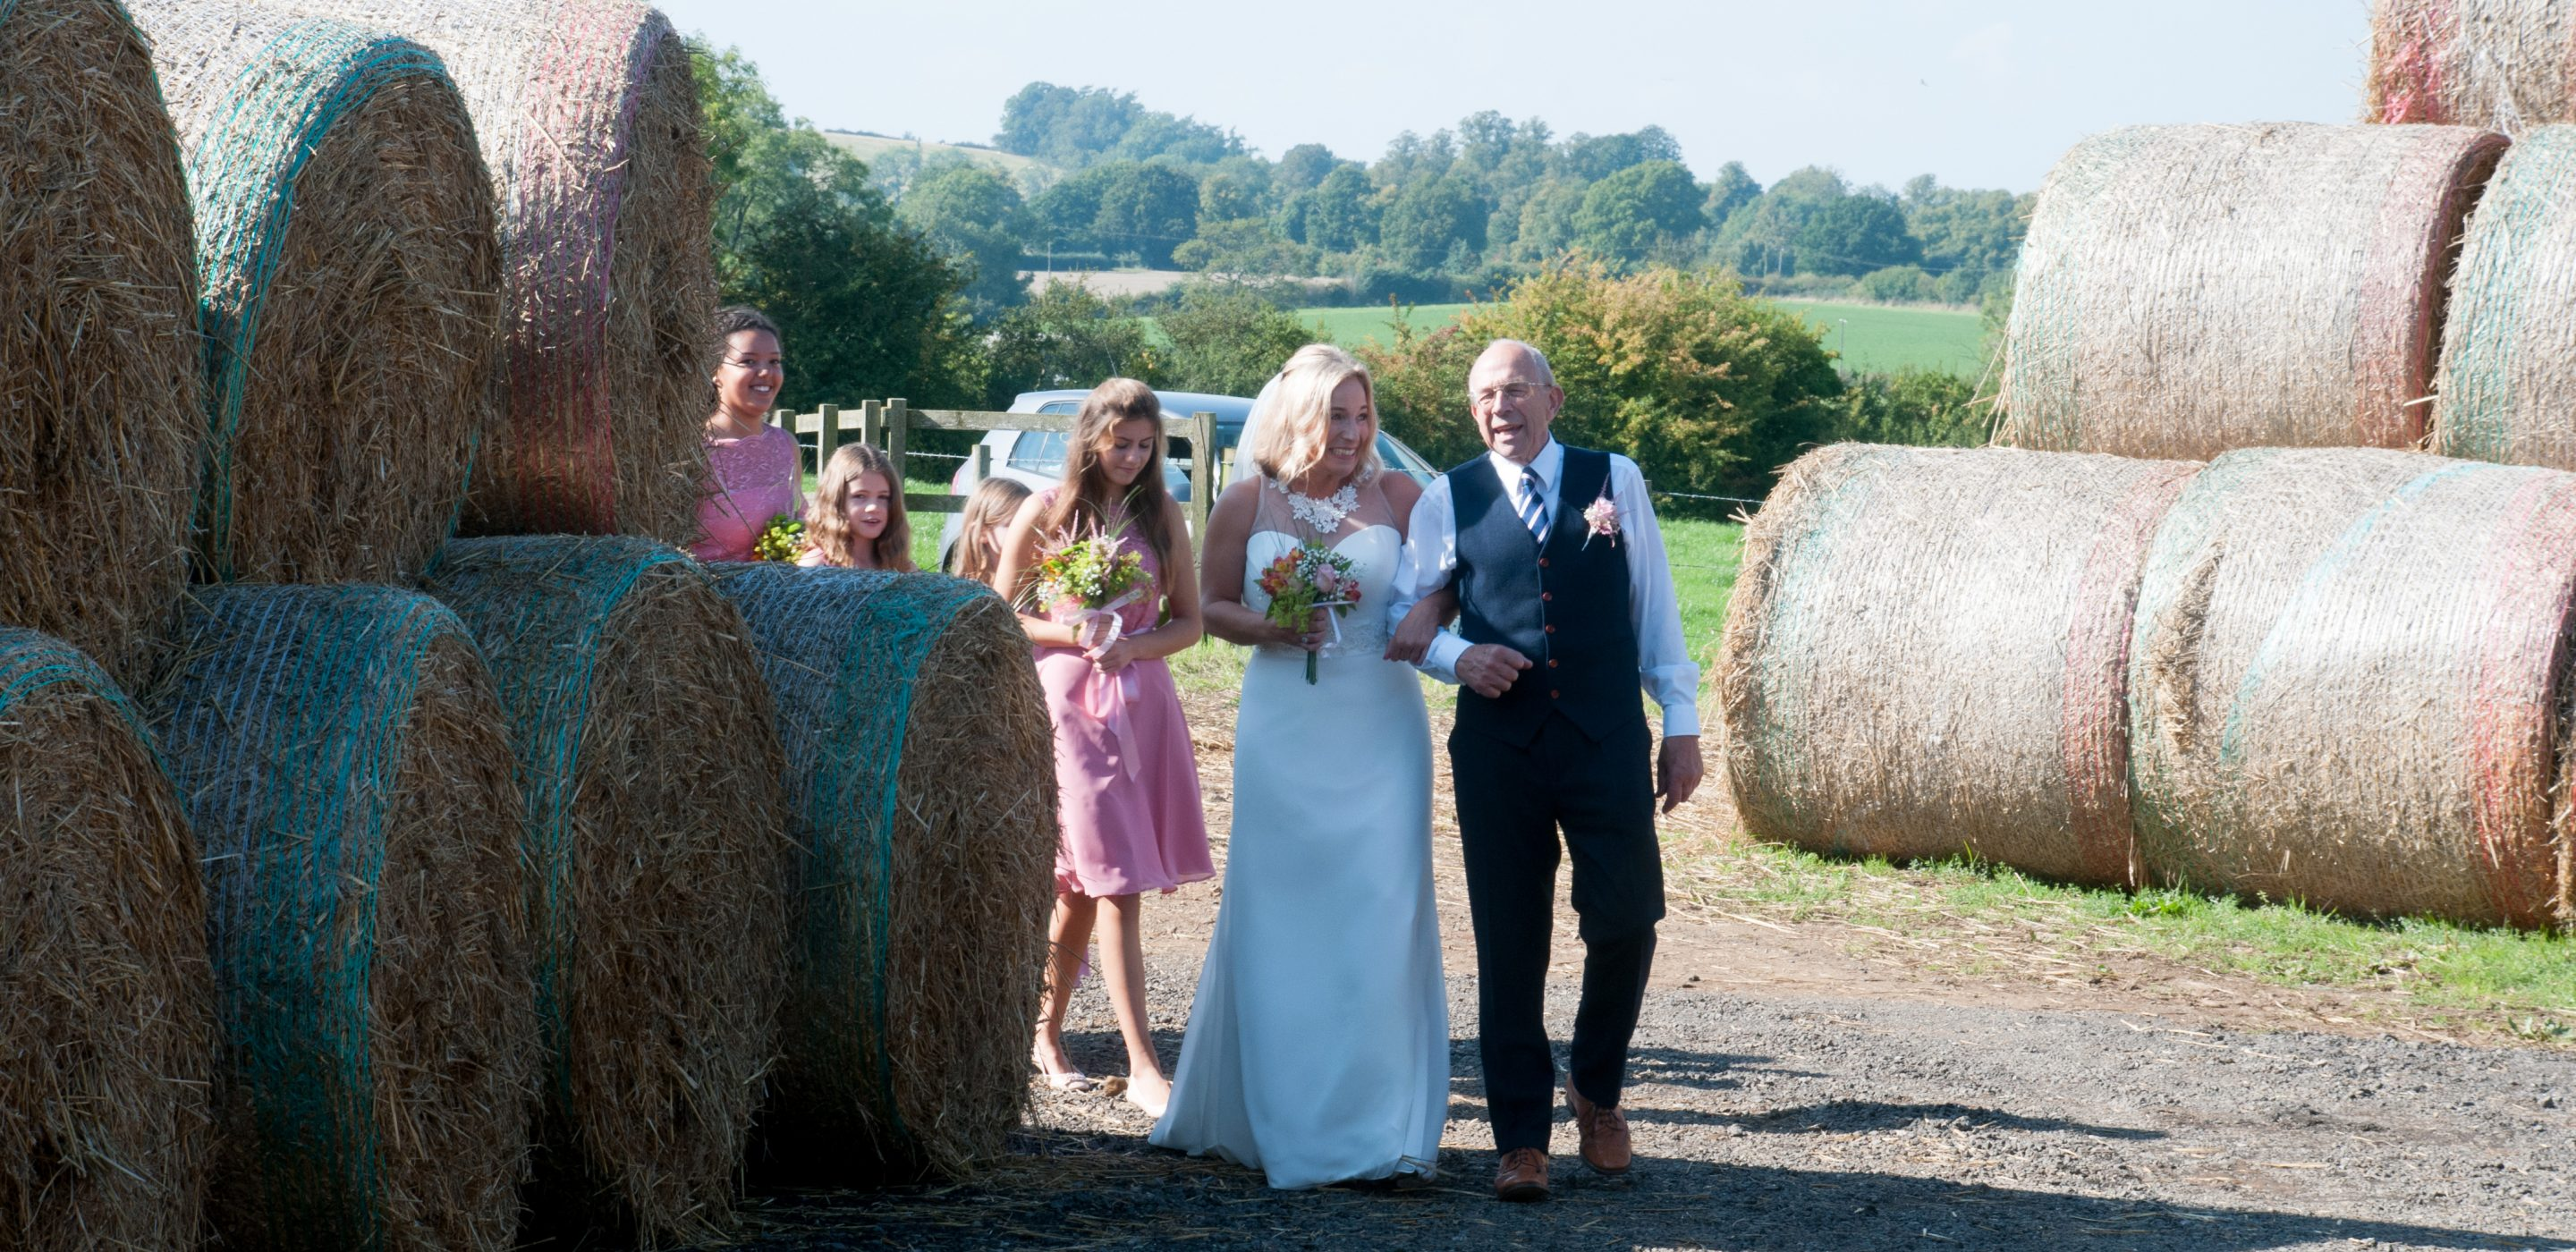 Wood Farm, an exciting new venture and collaboration, wedding photography, northamptonshire